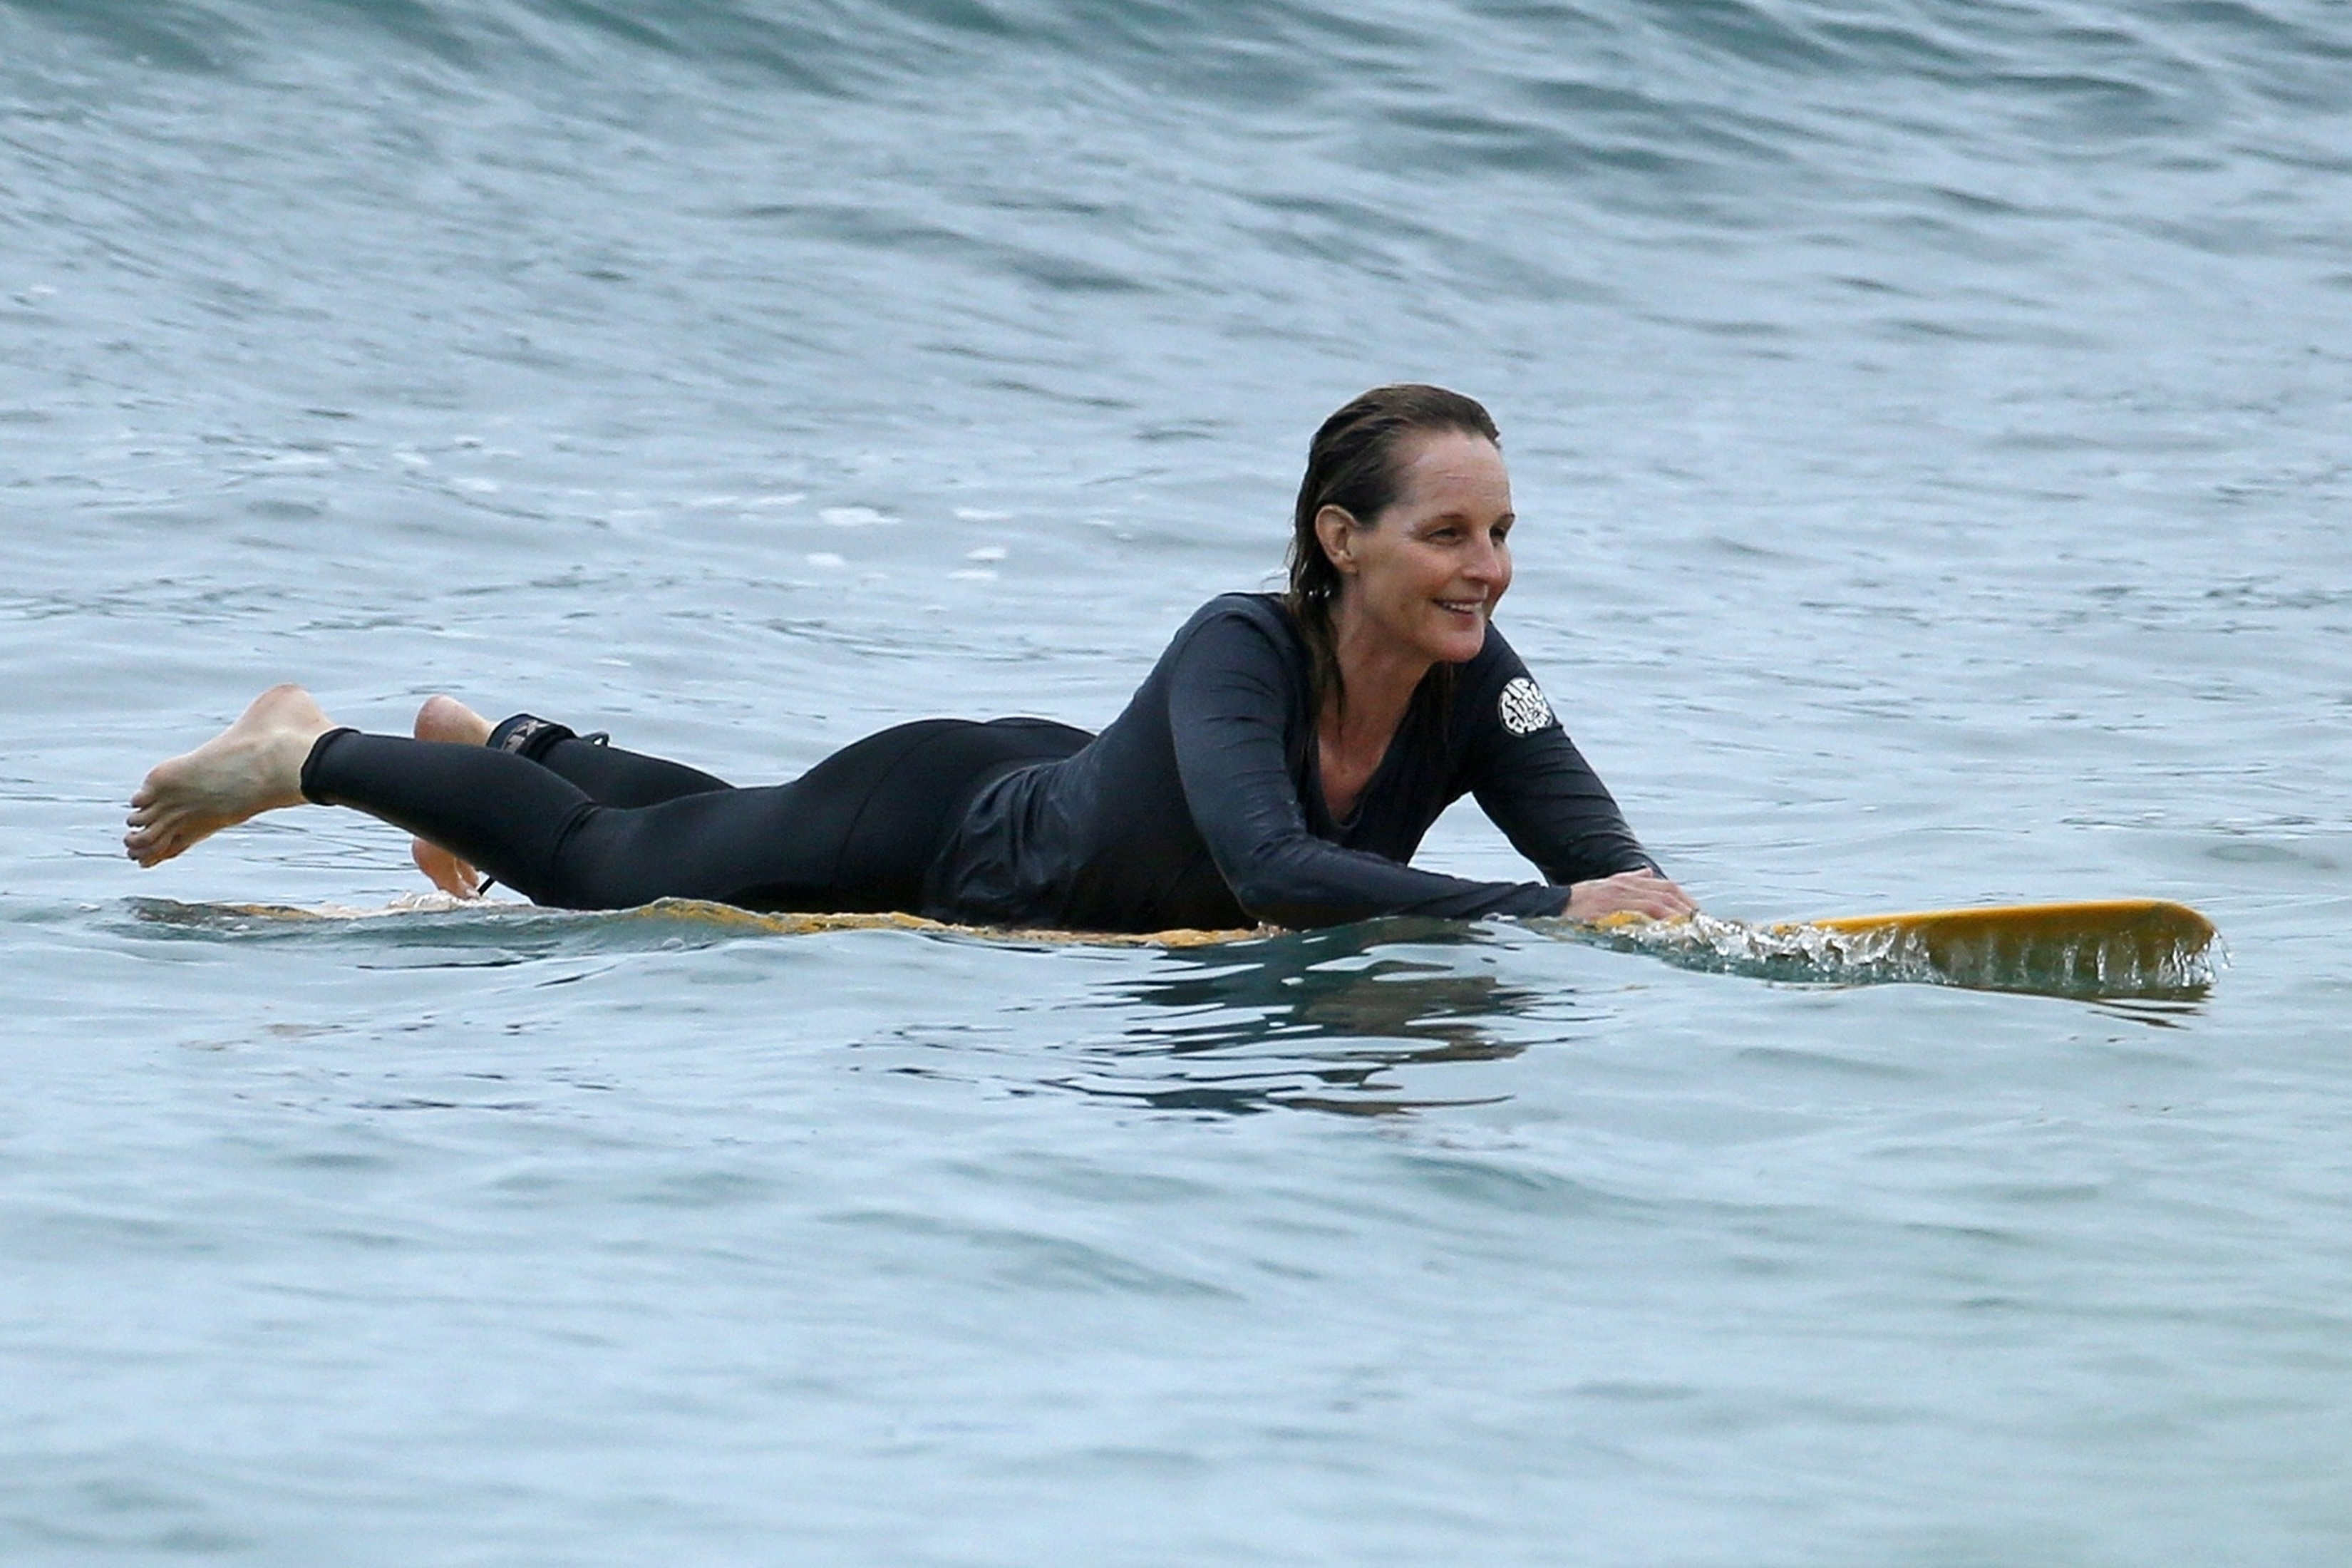 Helen Hunt on Surfing